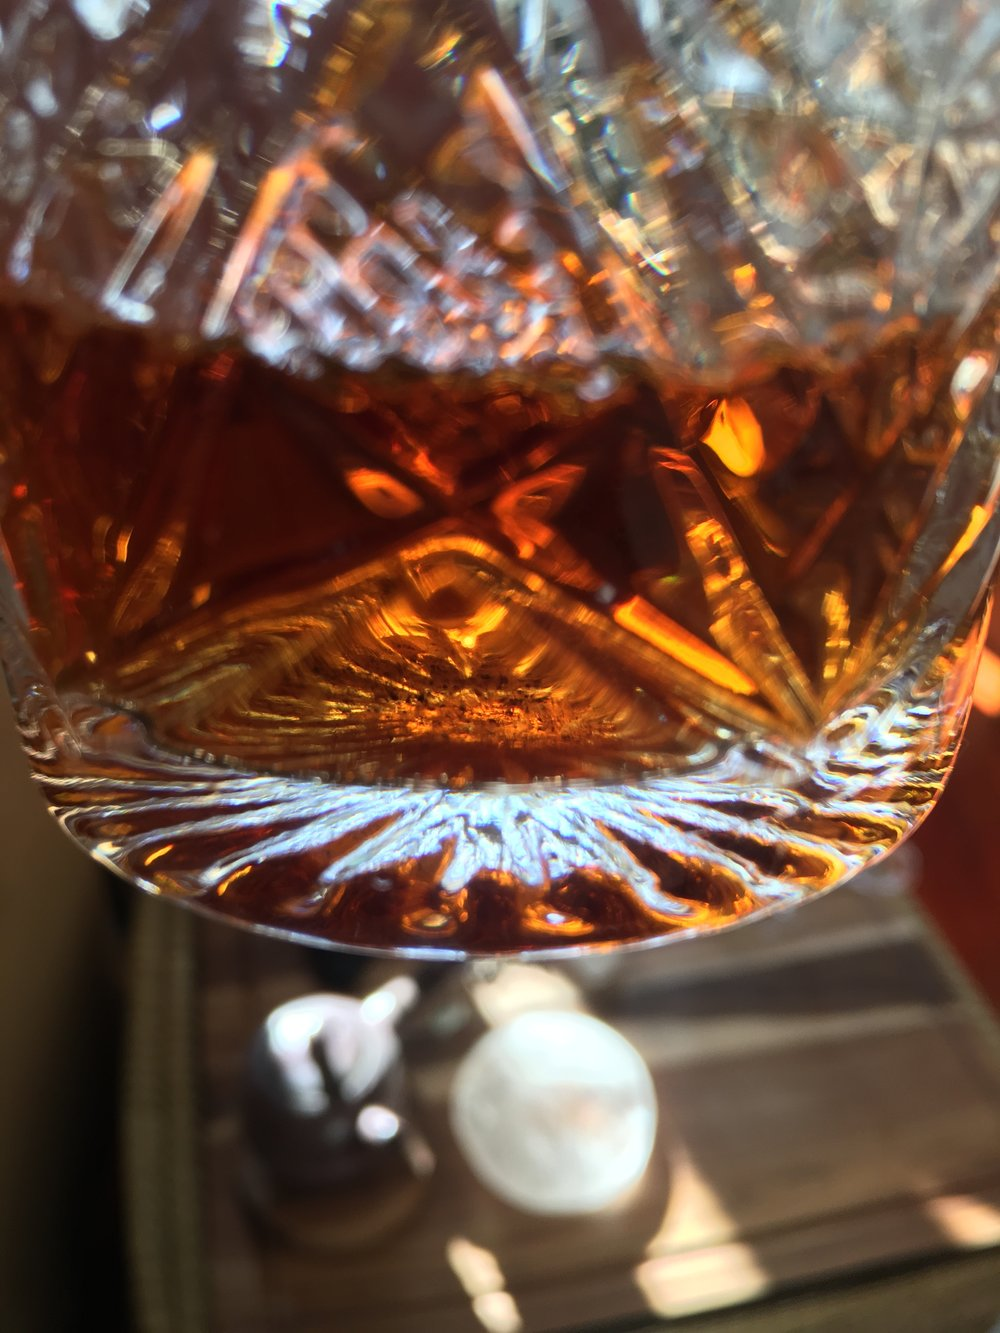 - Drinking this tea from a glass cup allows you to enjoy the bright golden-amber tea liquor.